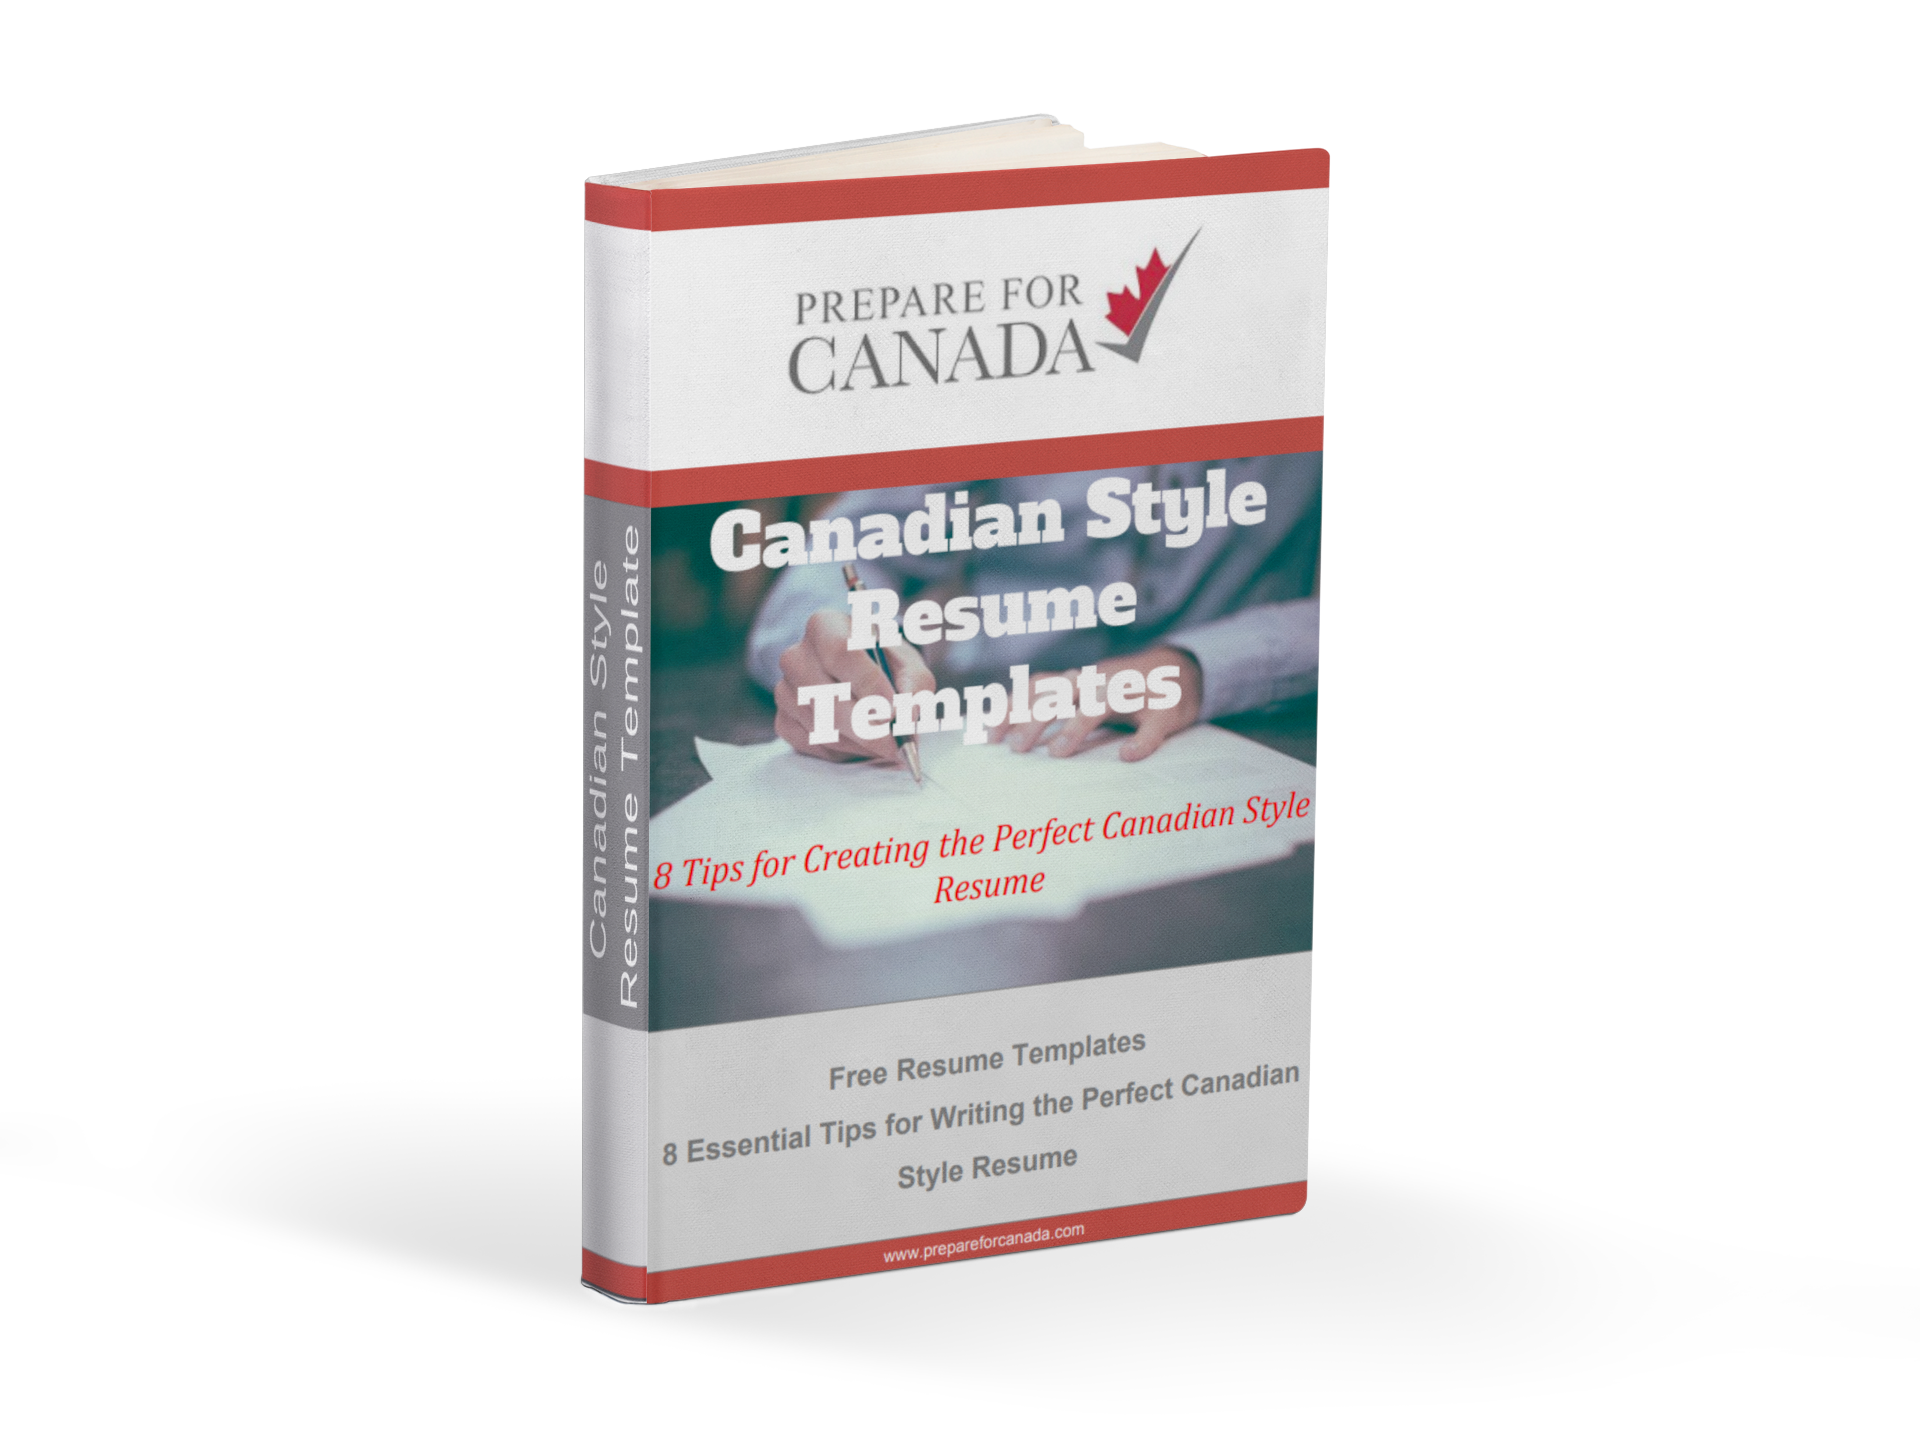 Canadian Style Resume Template